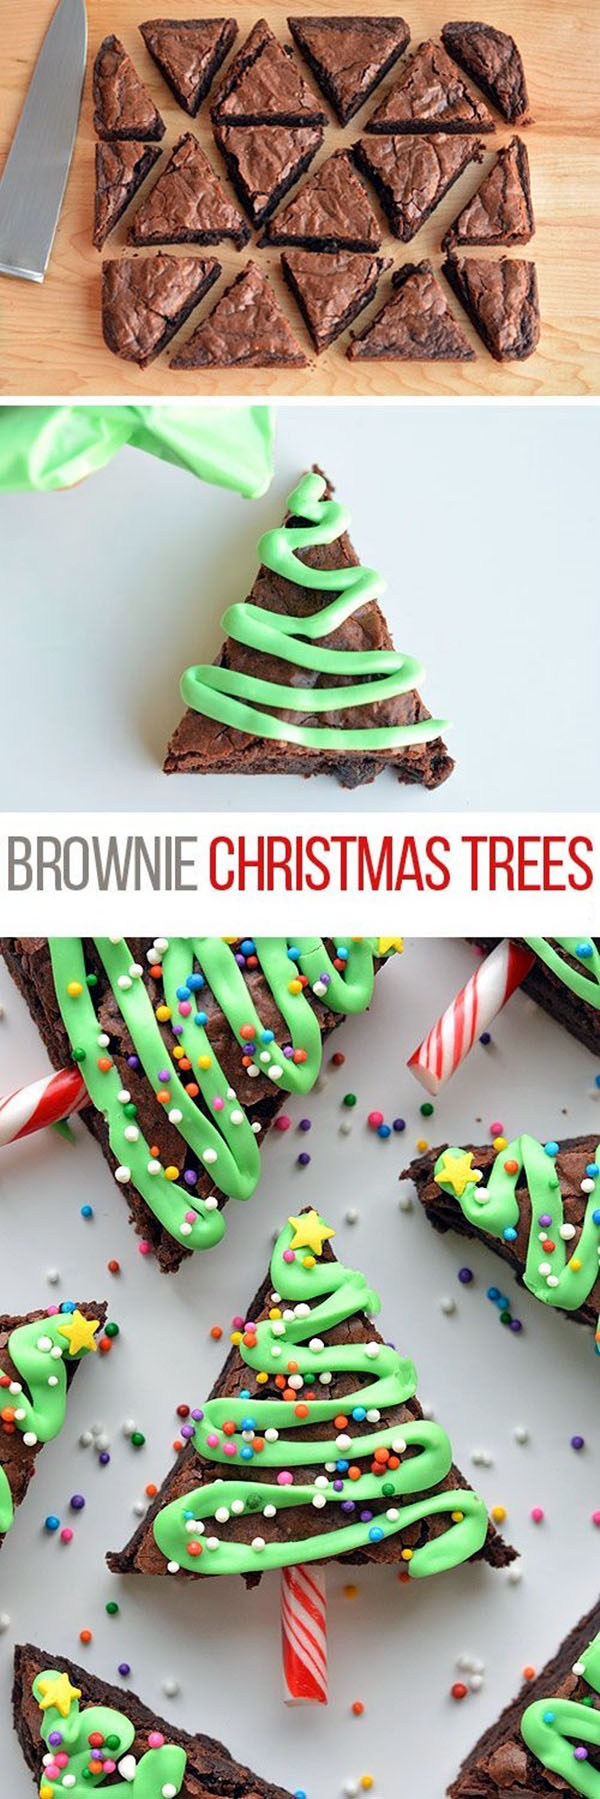 clever-christmas-food-ideas-9